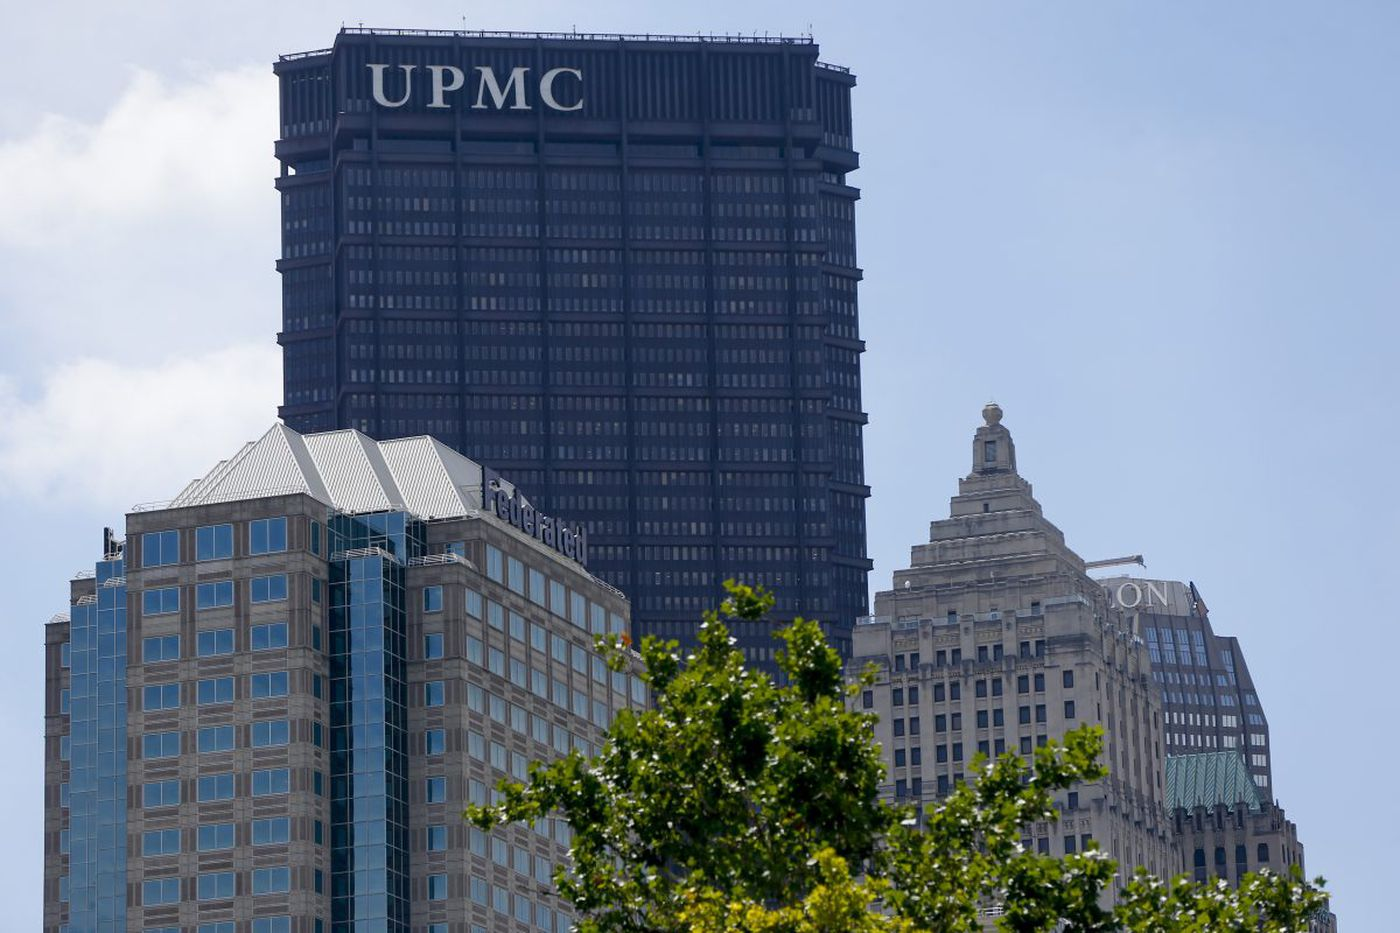 UPMC credit downgraded